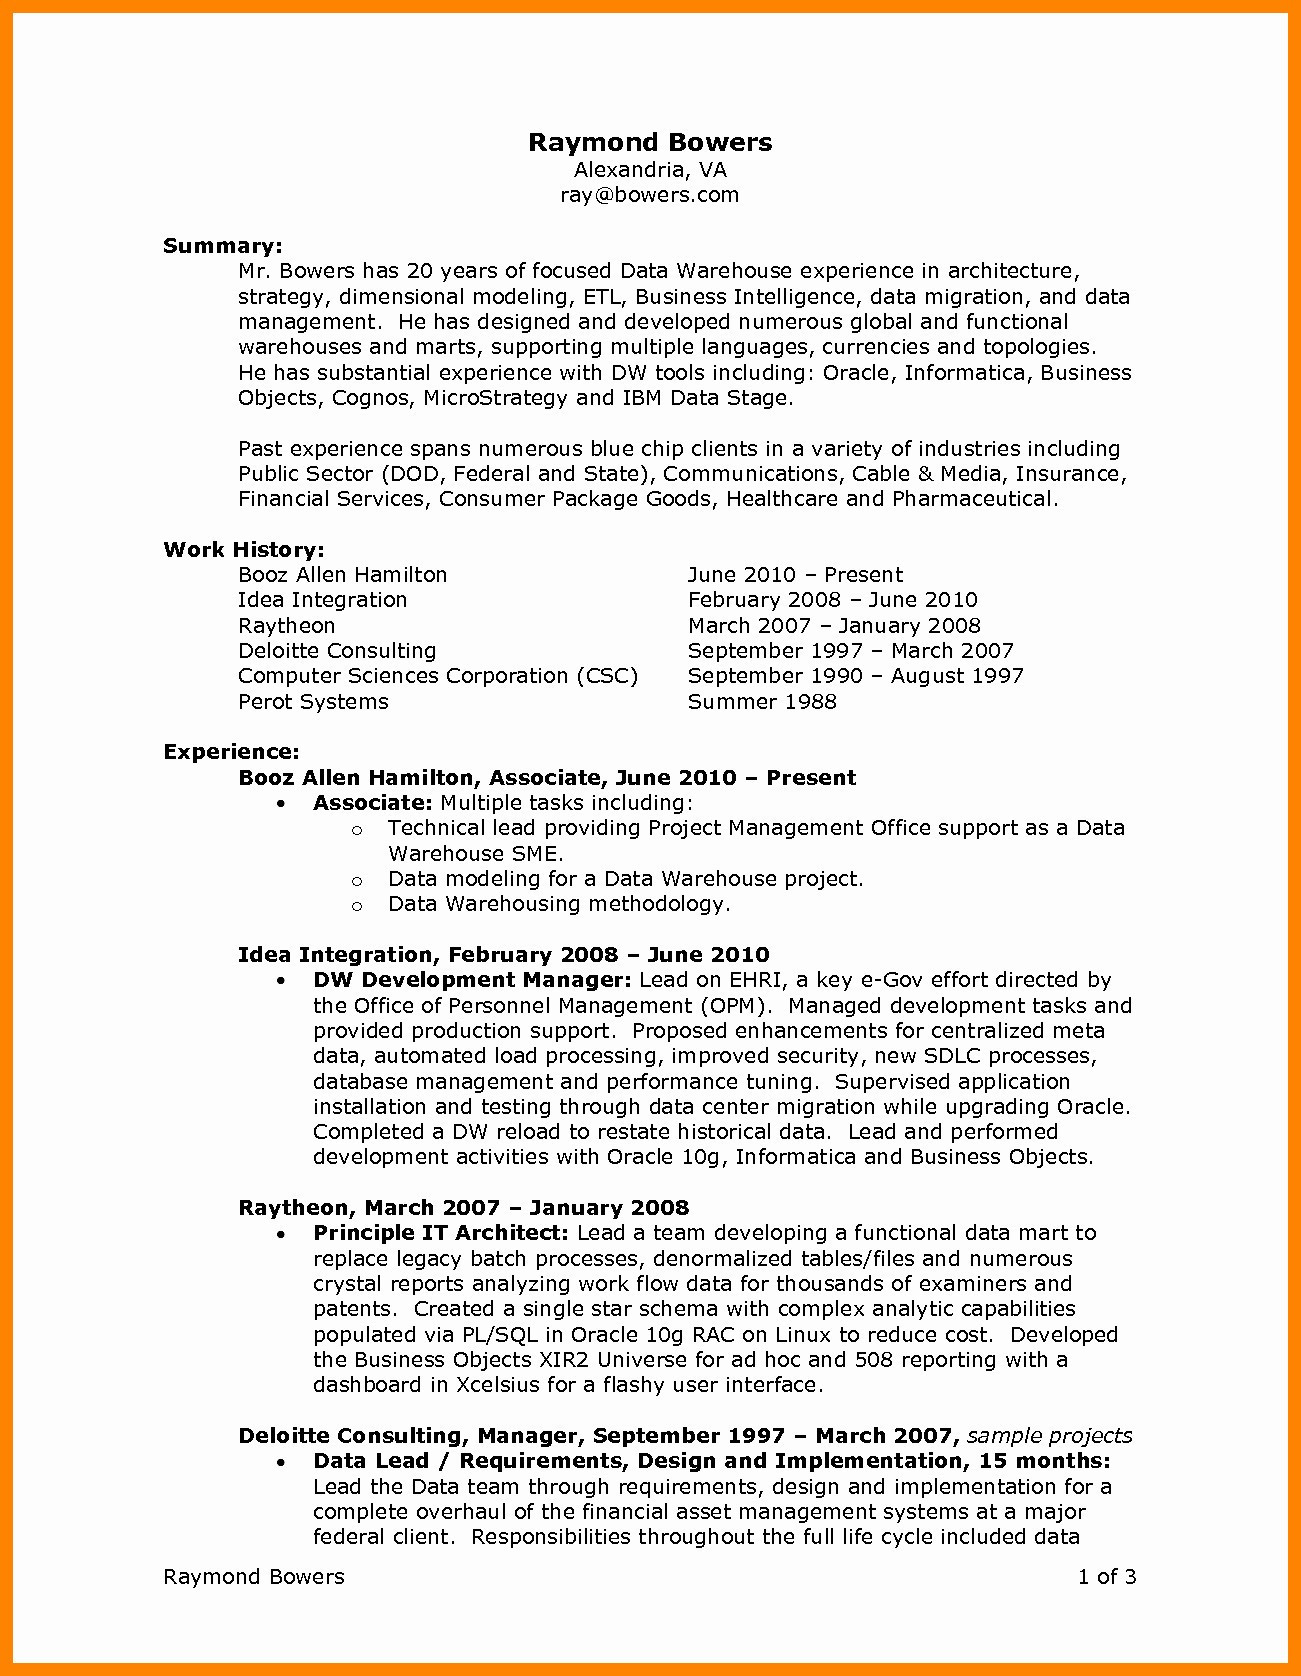 Free Template for Resume - Resume for Internal Promotion Template Free Downloads Beautiful